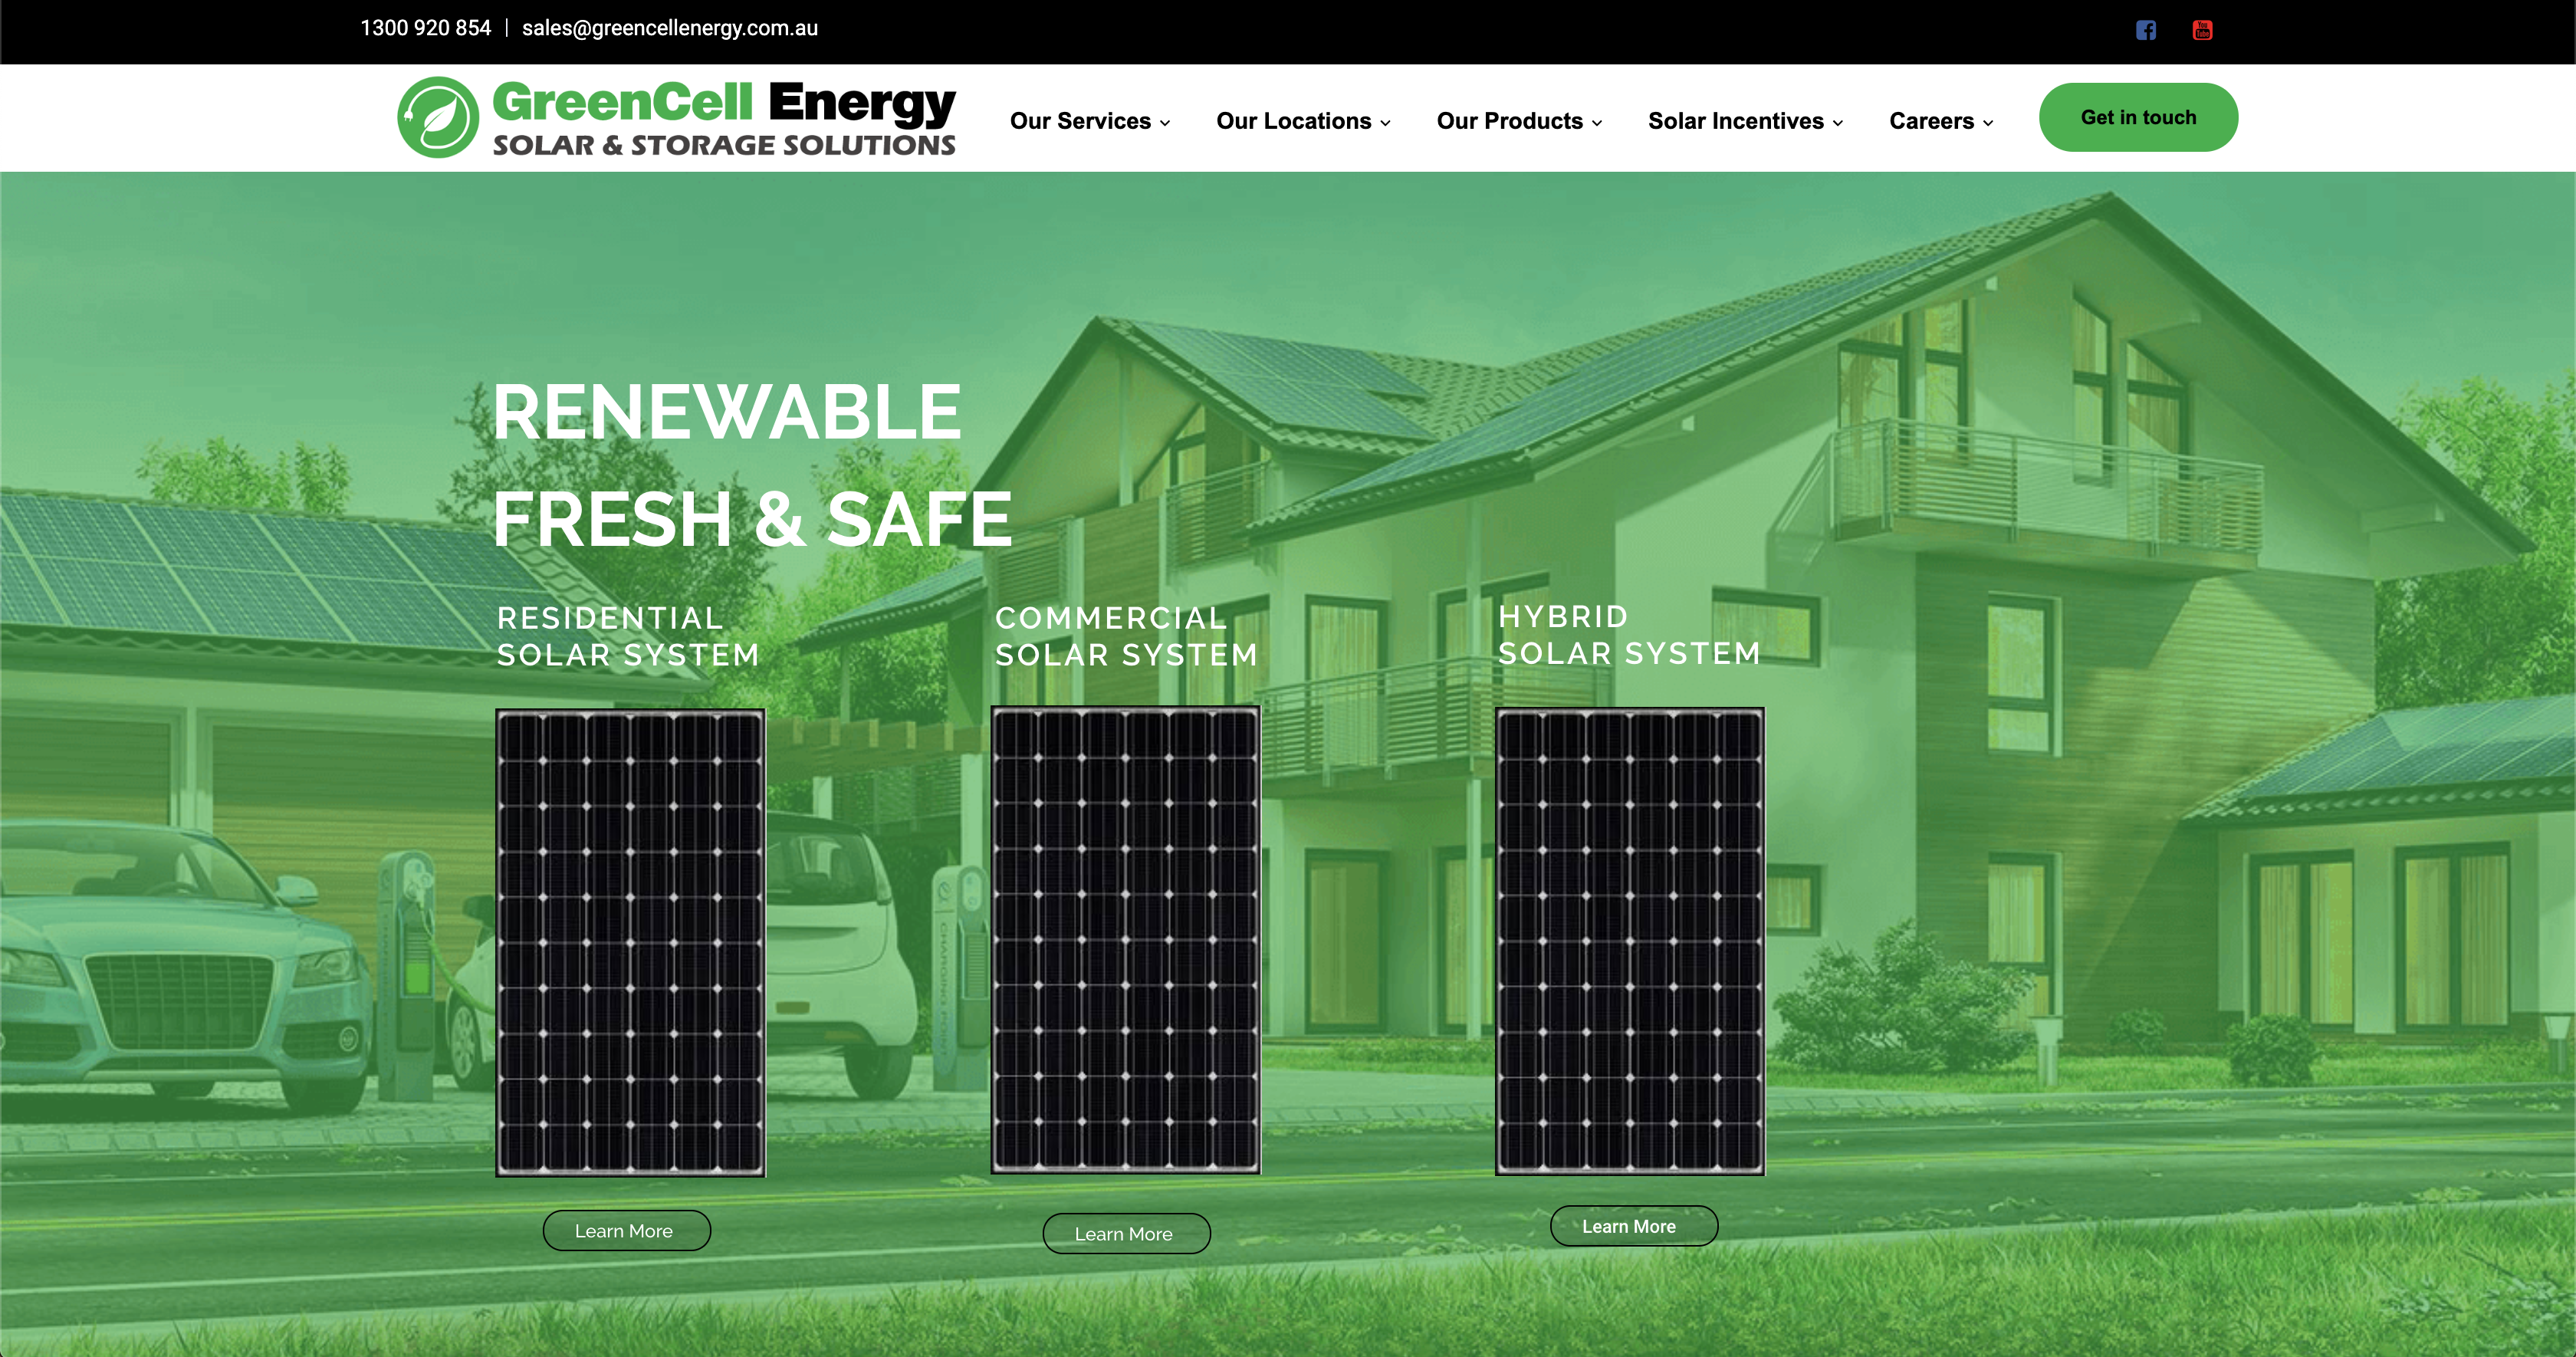 greencell energy